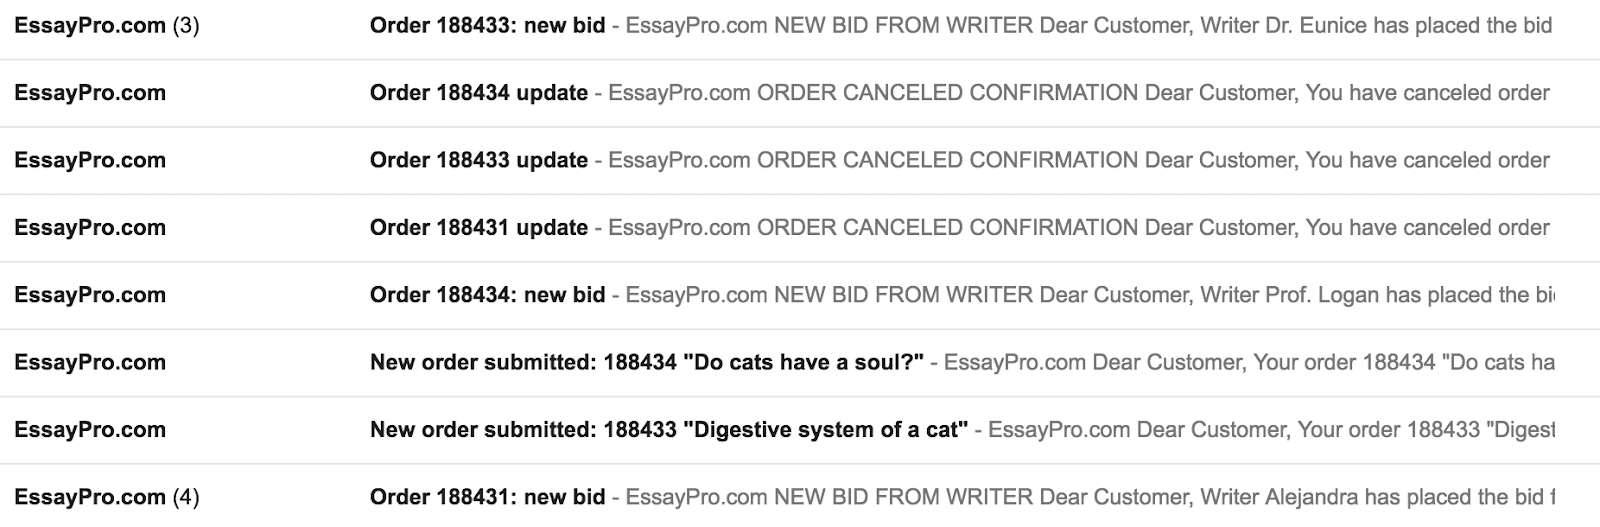 EssayPro email spams